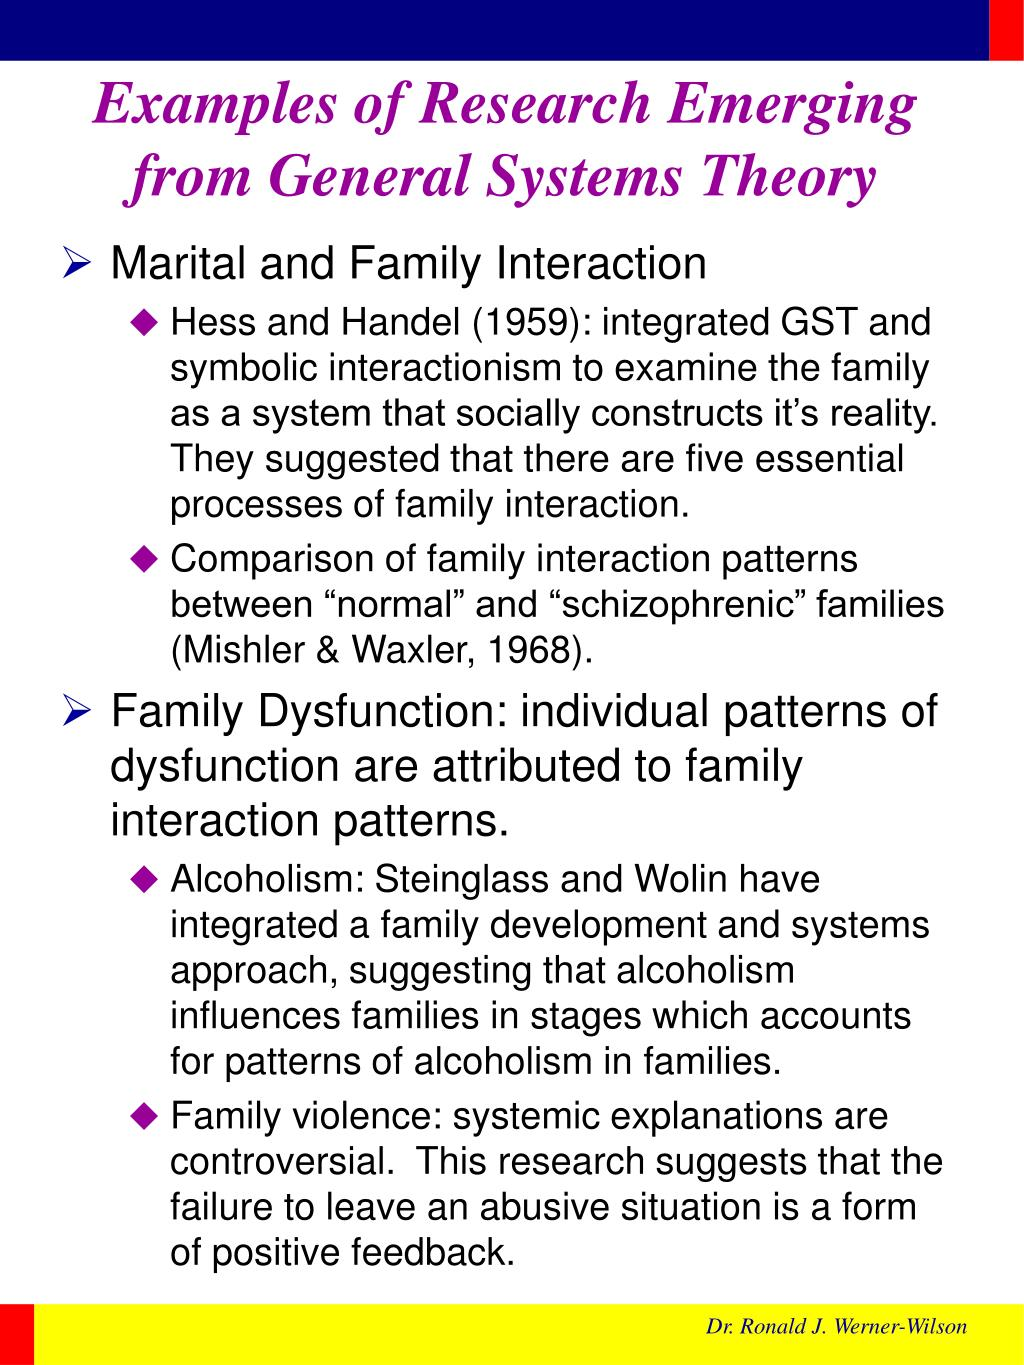 Examples of Research Emerging from General Systems Theory